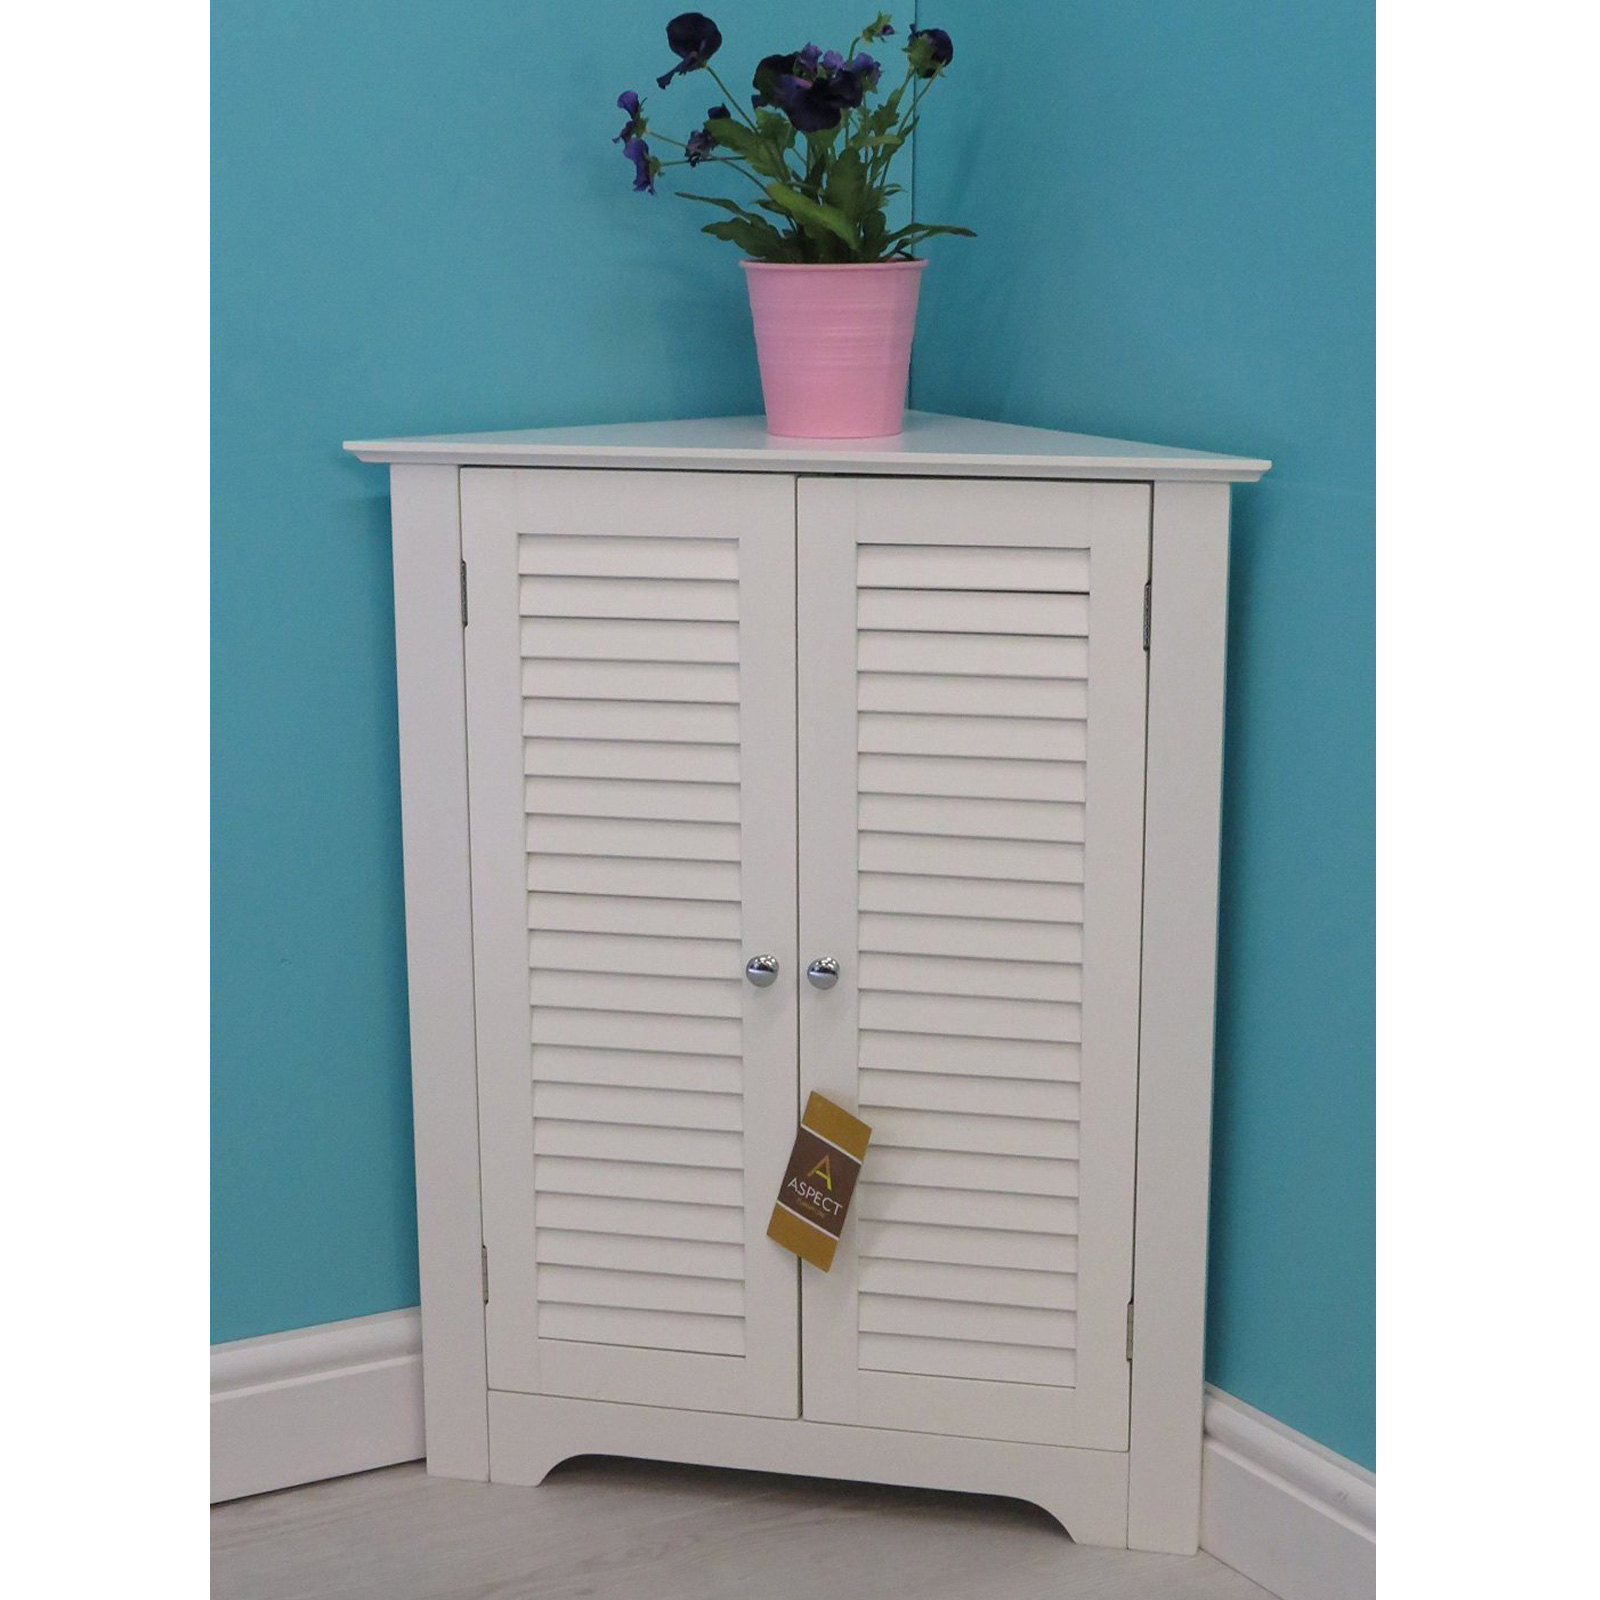 vintage bathroom corner cabinet wooden storage unit with shelves aspect white ebay. Black Bedroom Furniture Sets. Home Design Ideas